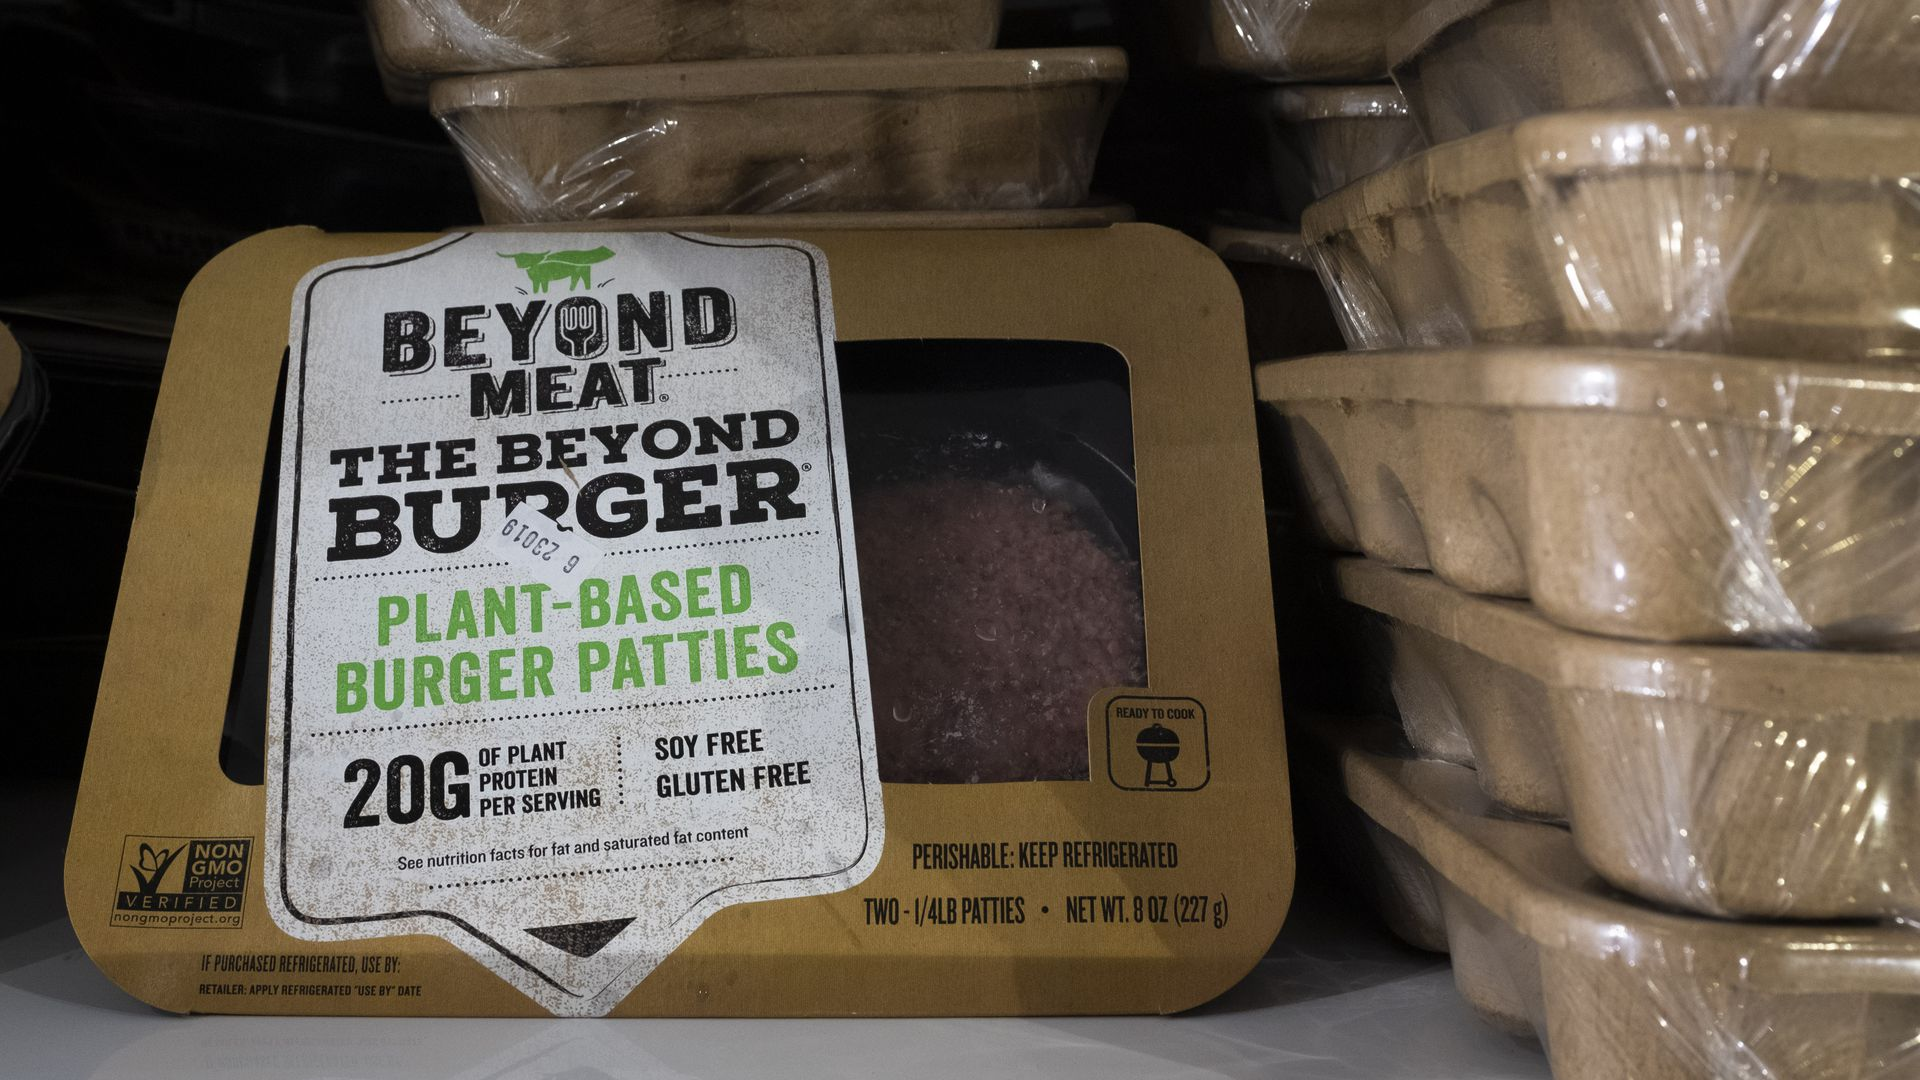 Beyond Meat packages.